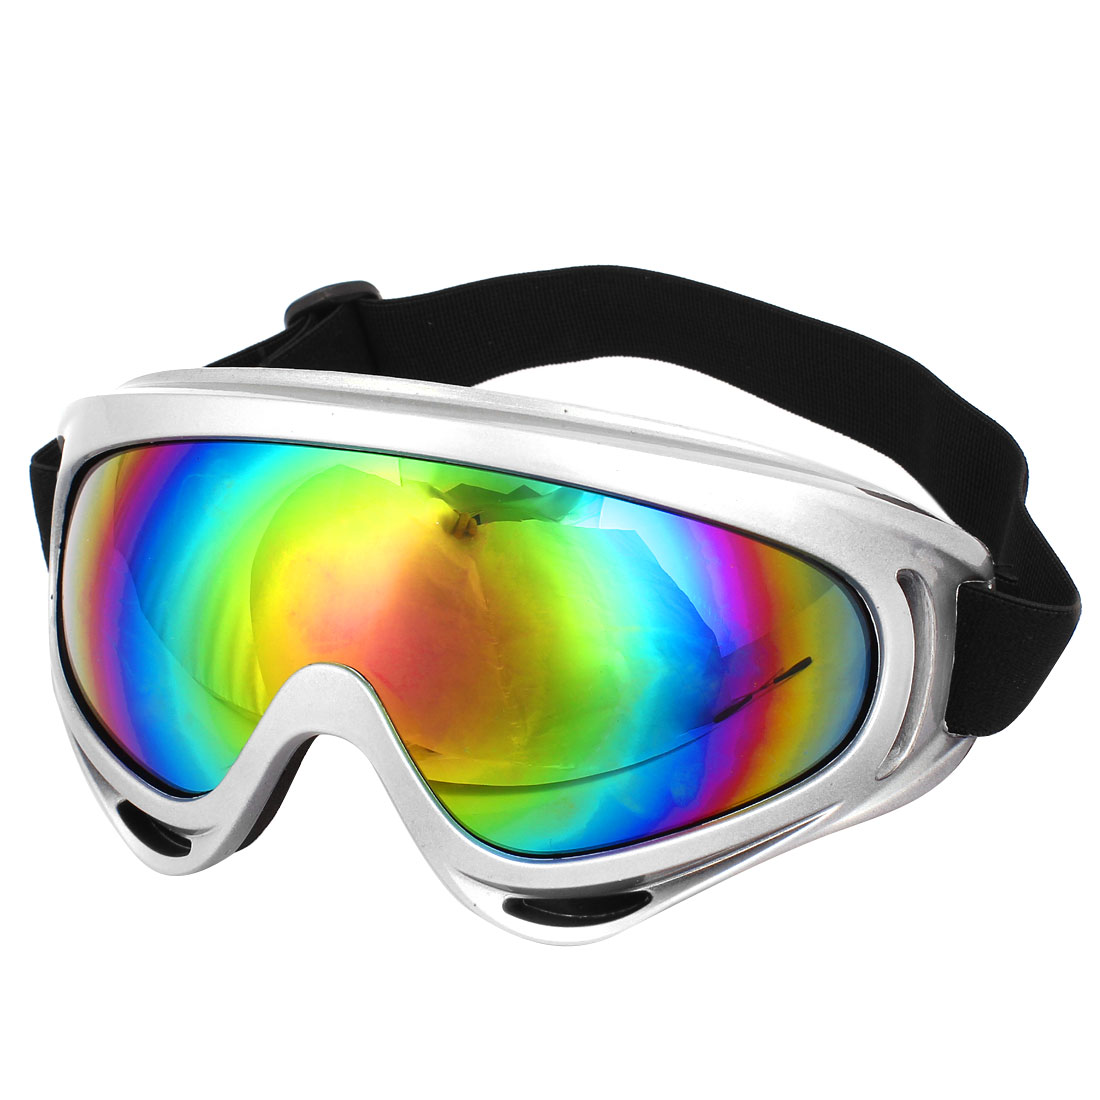 Unisex Colorful Lens Full Rim Skate Snowboard Sports Cycle Goggles Eyewear